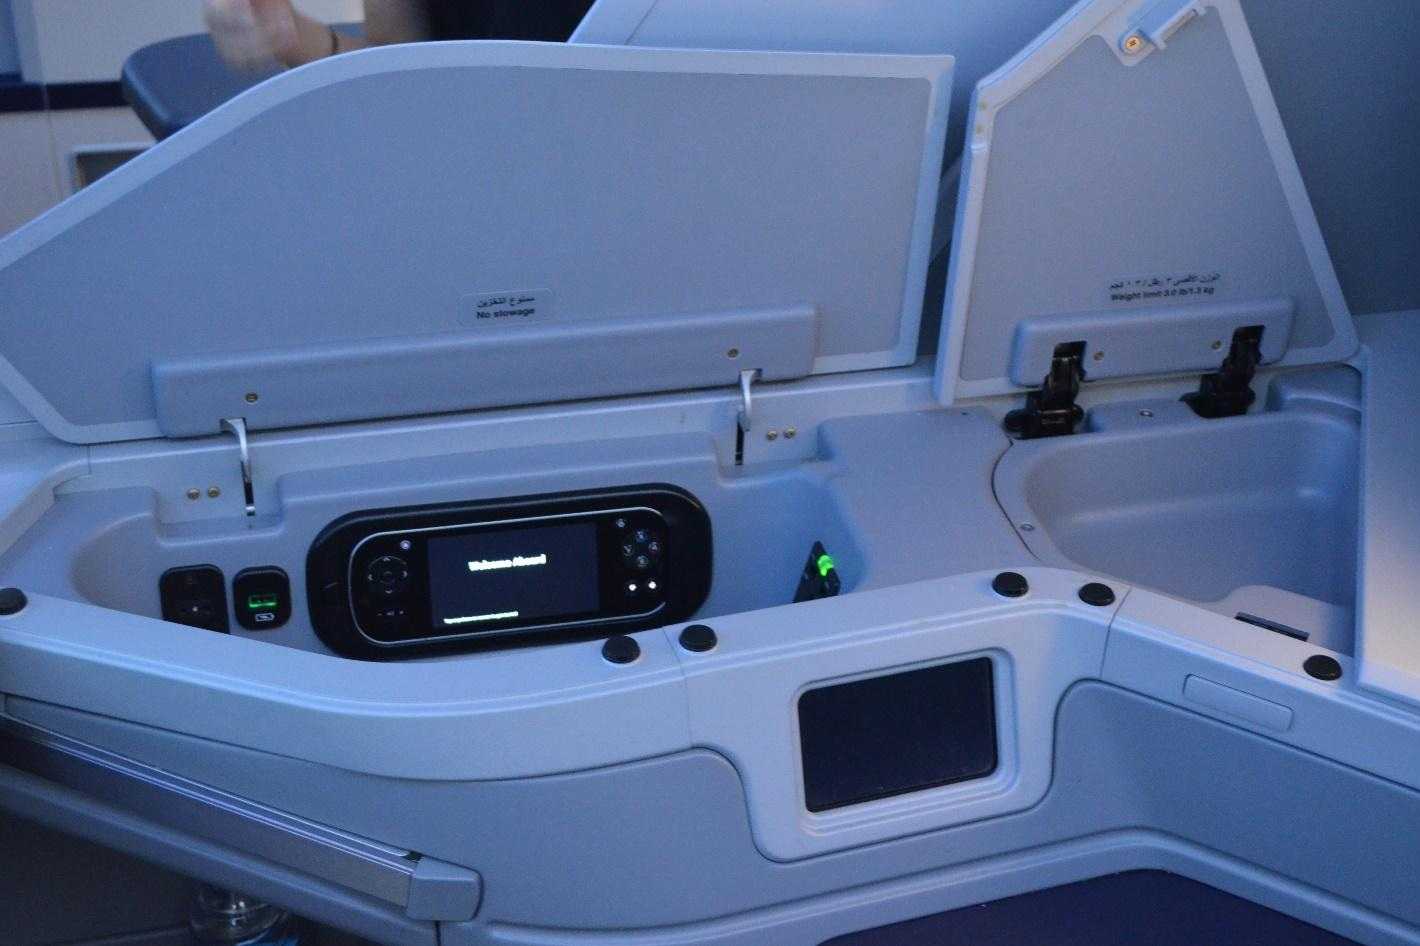 EgyptAir 787 business class – Storage units